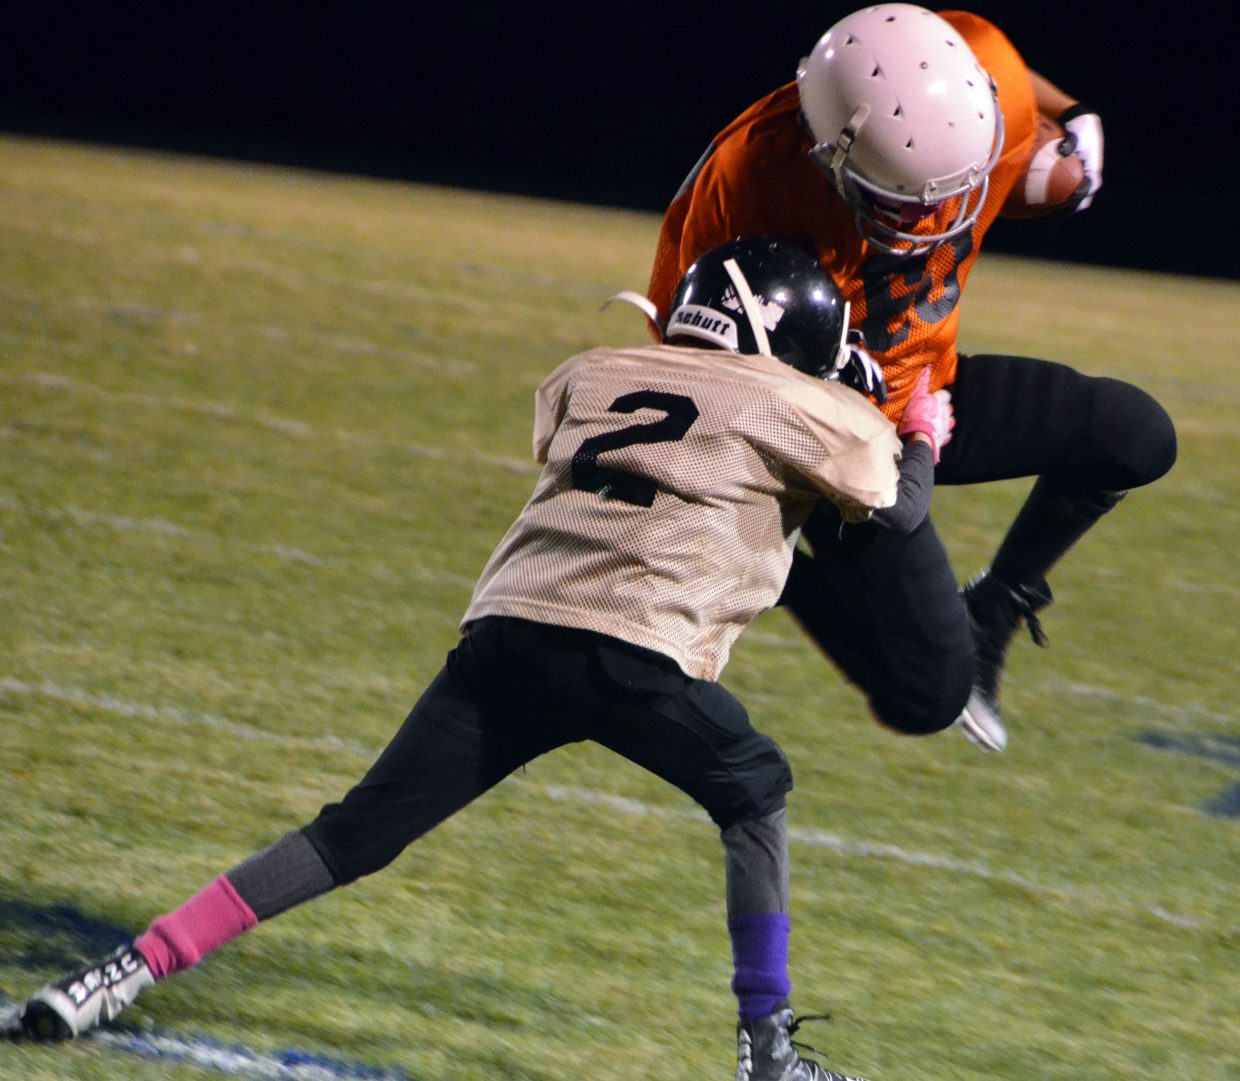 The Broncos' Colt Call takes a hop to avoid a tackle during the Craig Parks and Recreation Doak Walker playoffs.